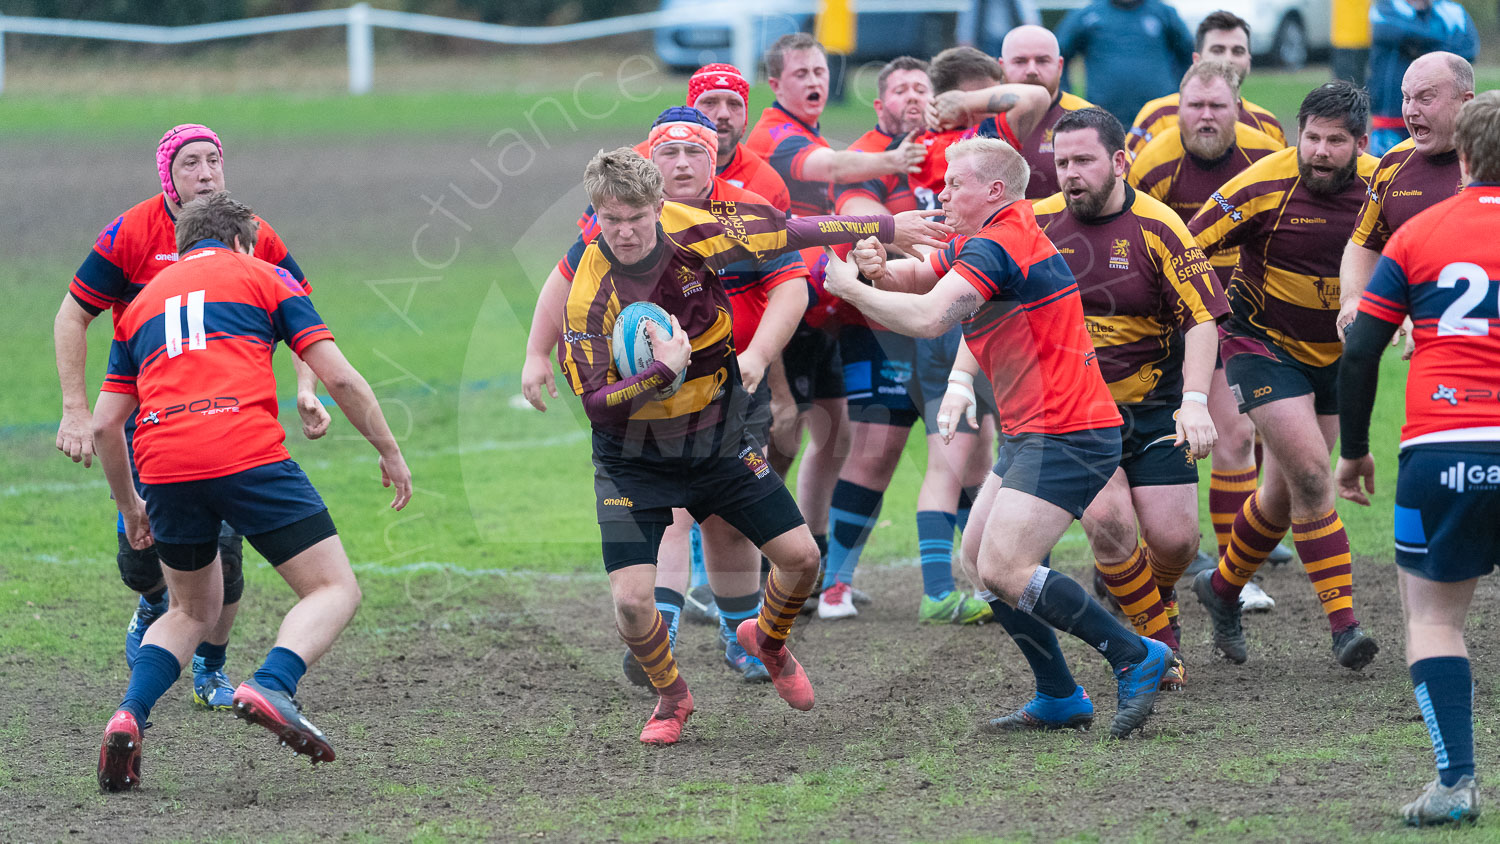 20181027 Amp Extras vs St Neots 2nd XV #2469